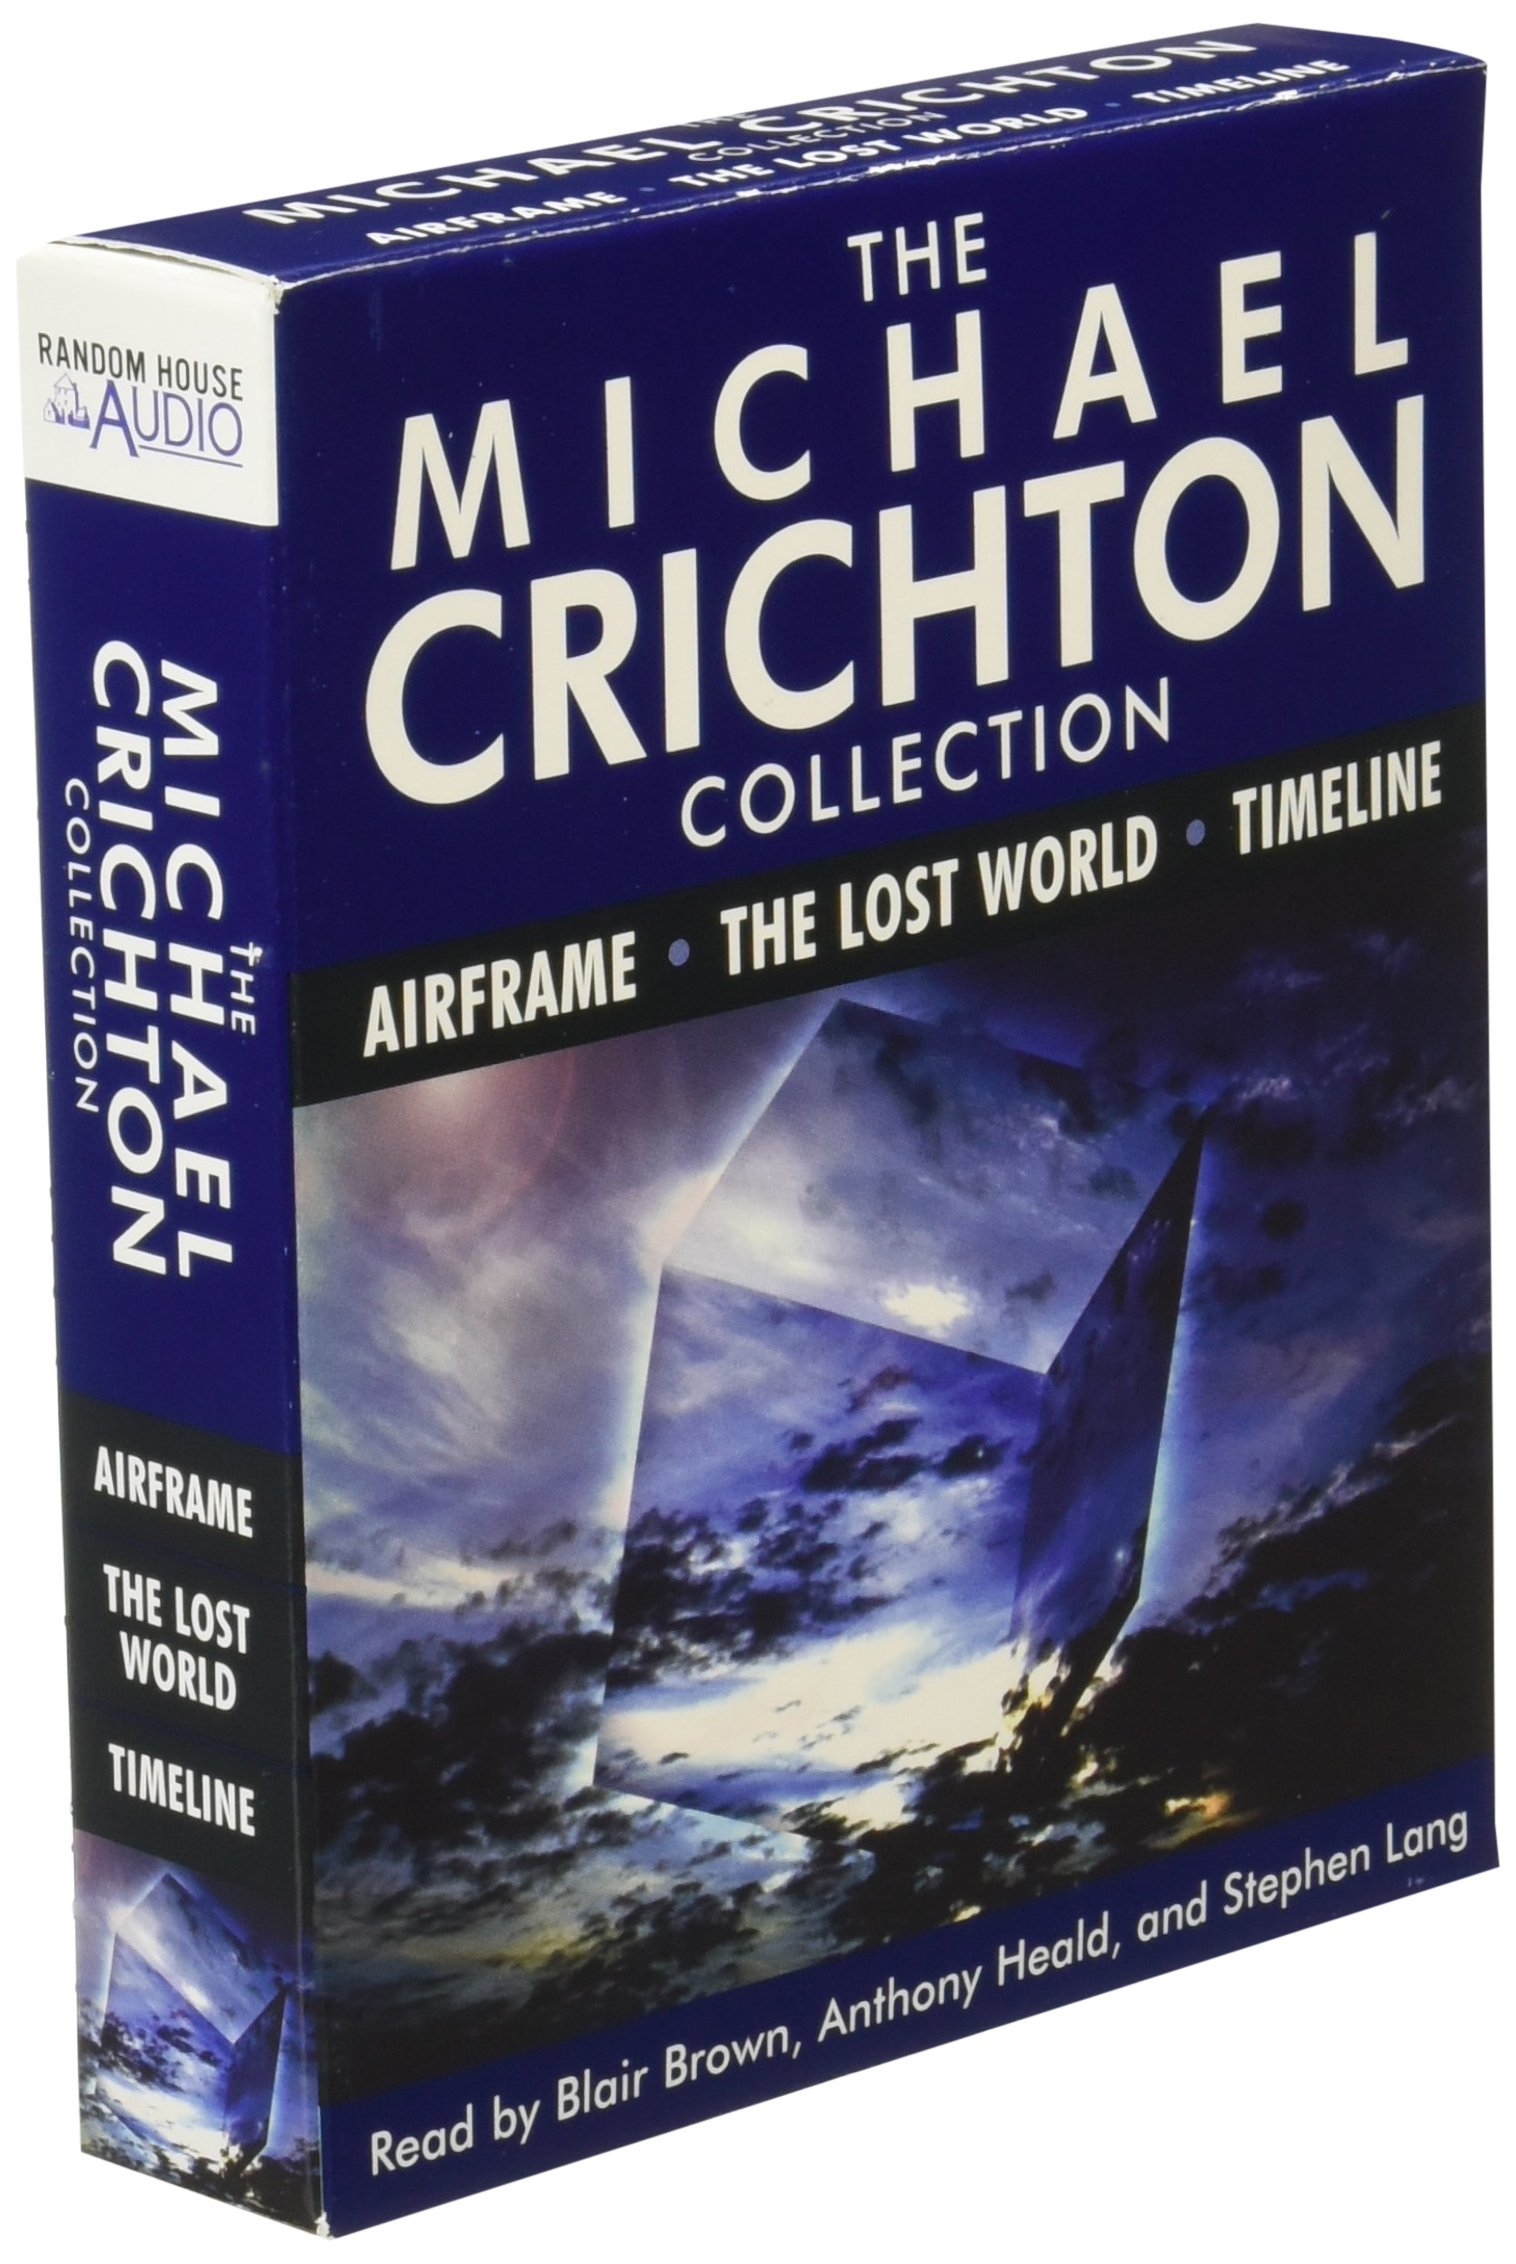 Michael Crichton Collection Airframe Timeline product image